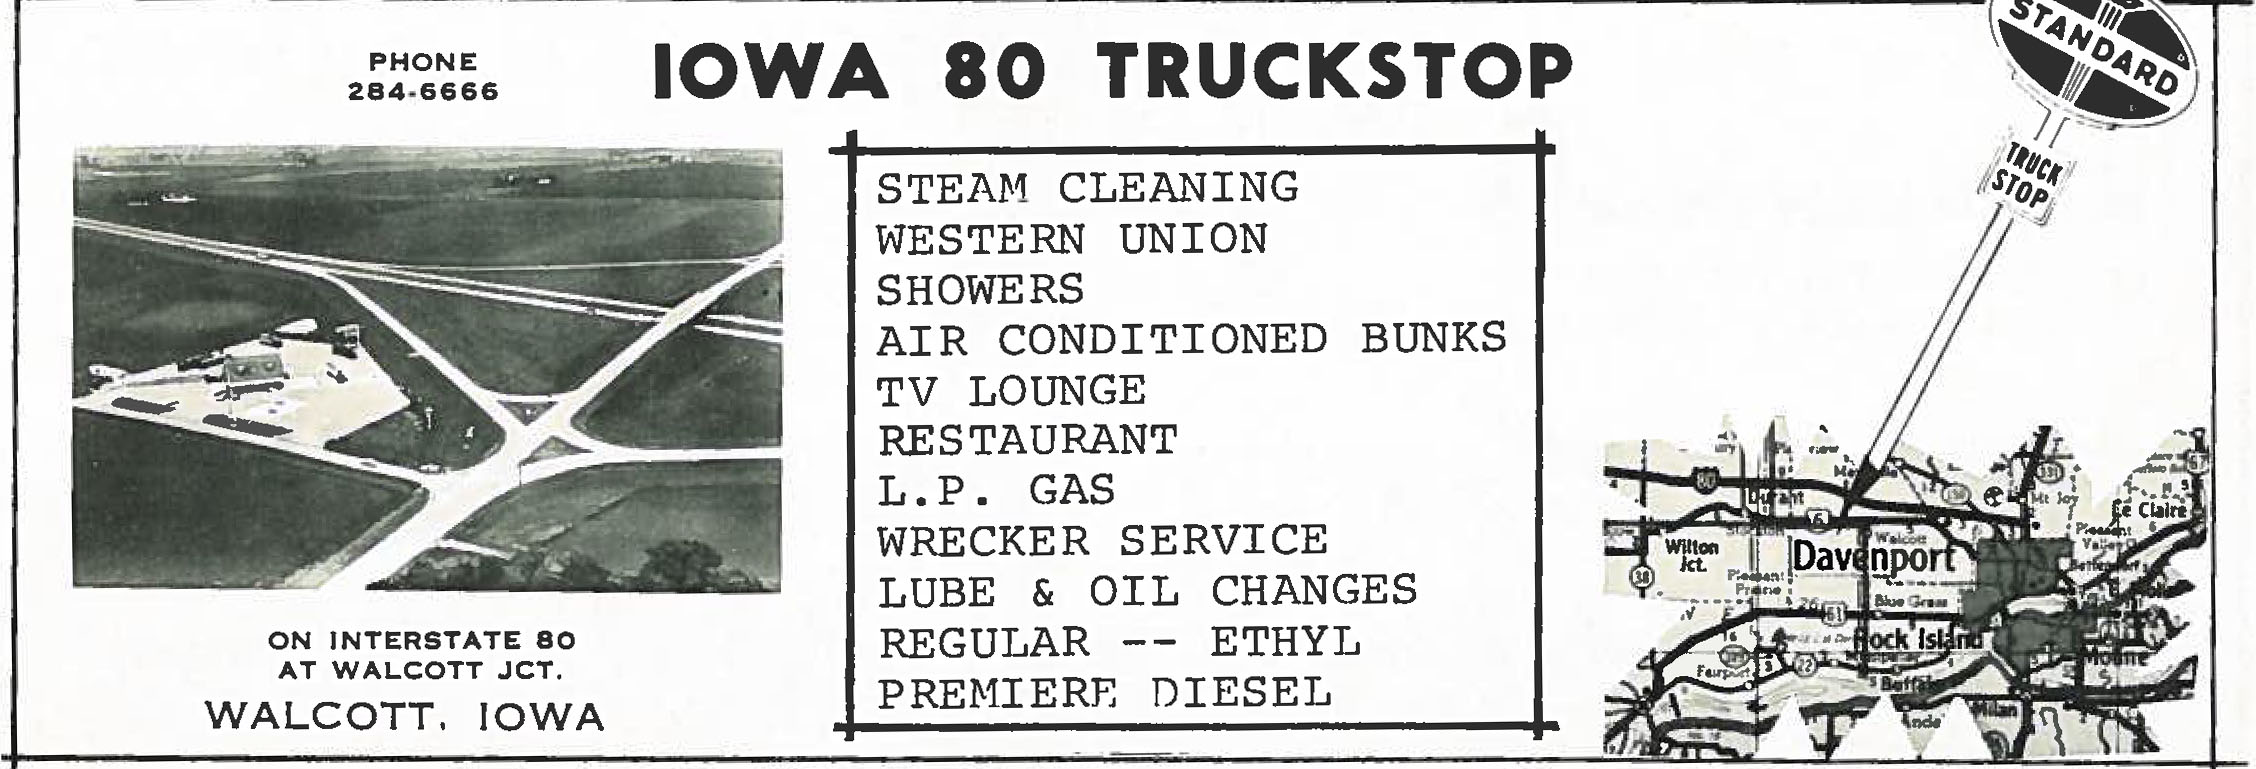 An ad for the Iowa 80 Truckstop from the September 1965 issue of Overdrive. Compare it to the aerial photo above, which ran less than 10 years later in Overdrive.